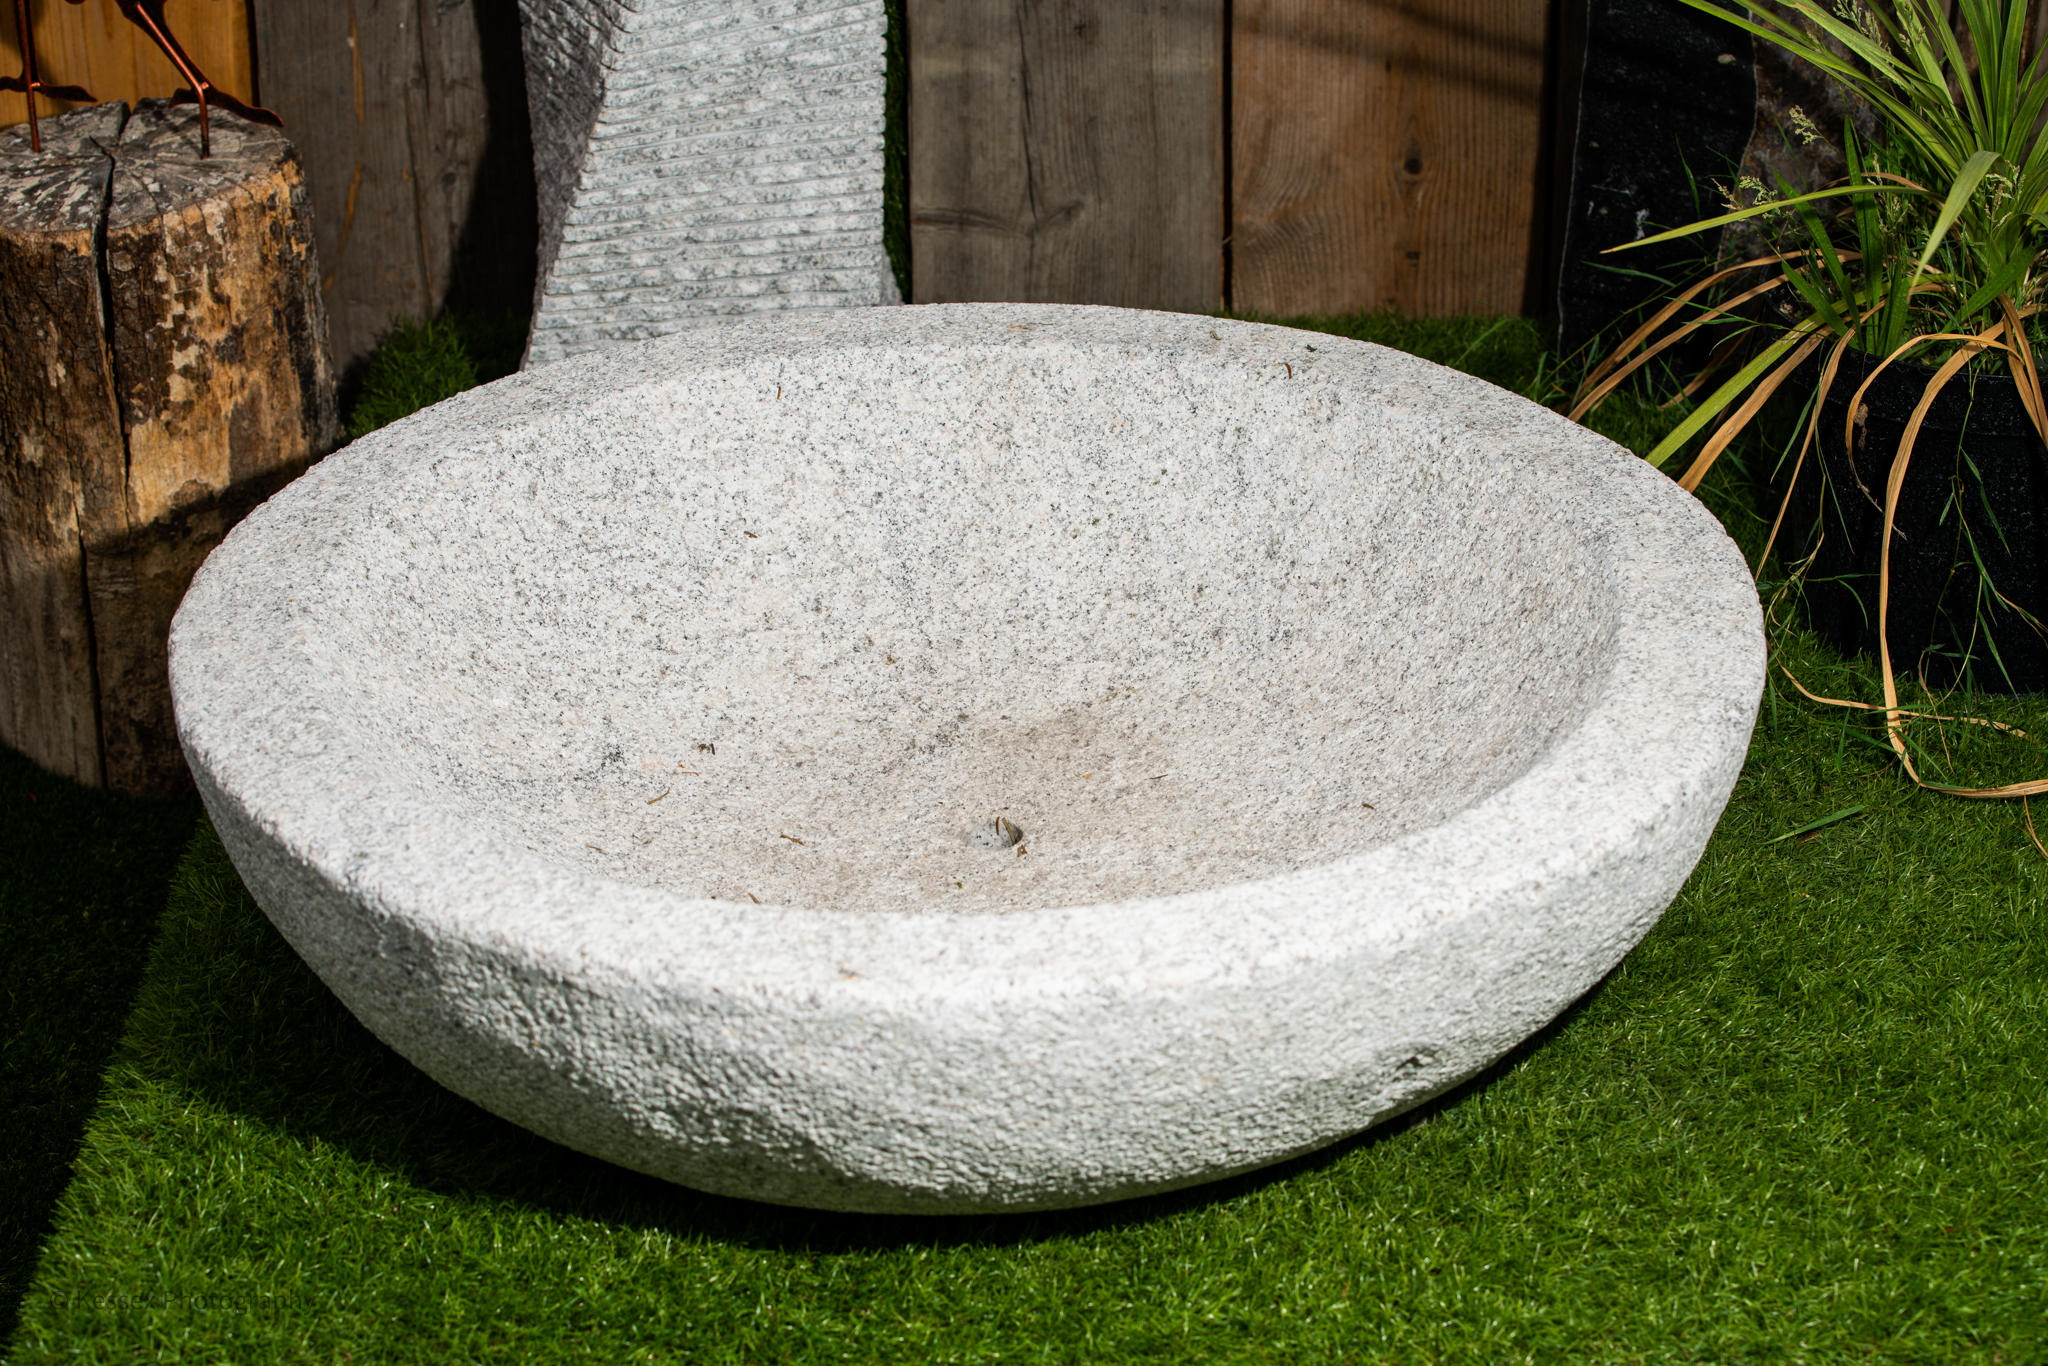 LARGE GRANITE BOWL